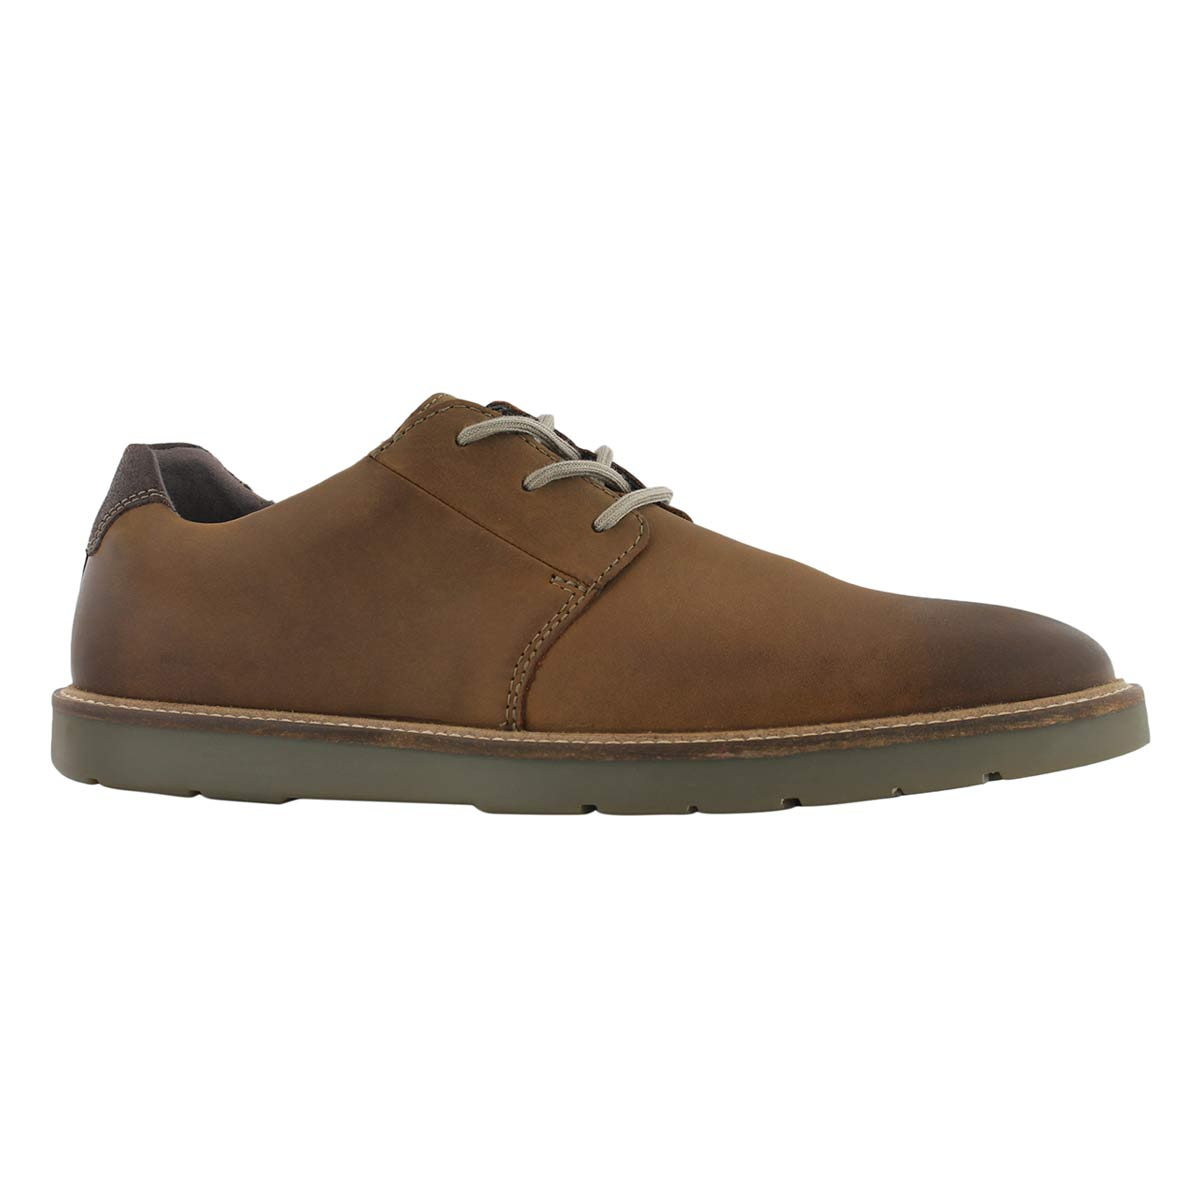 Mns Grandin Plain dk tan lace up oxford